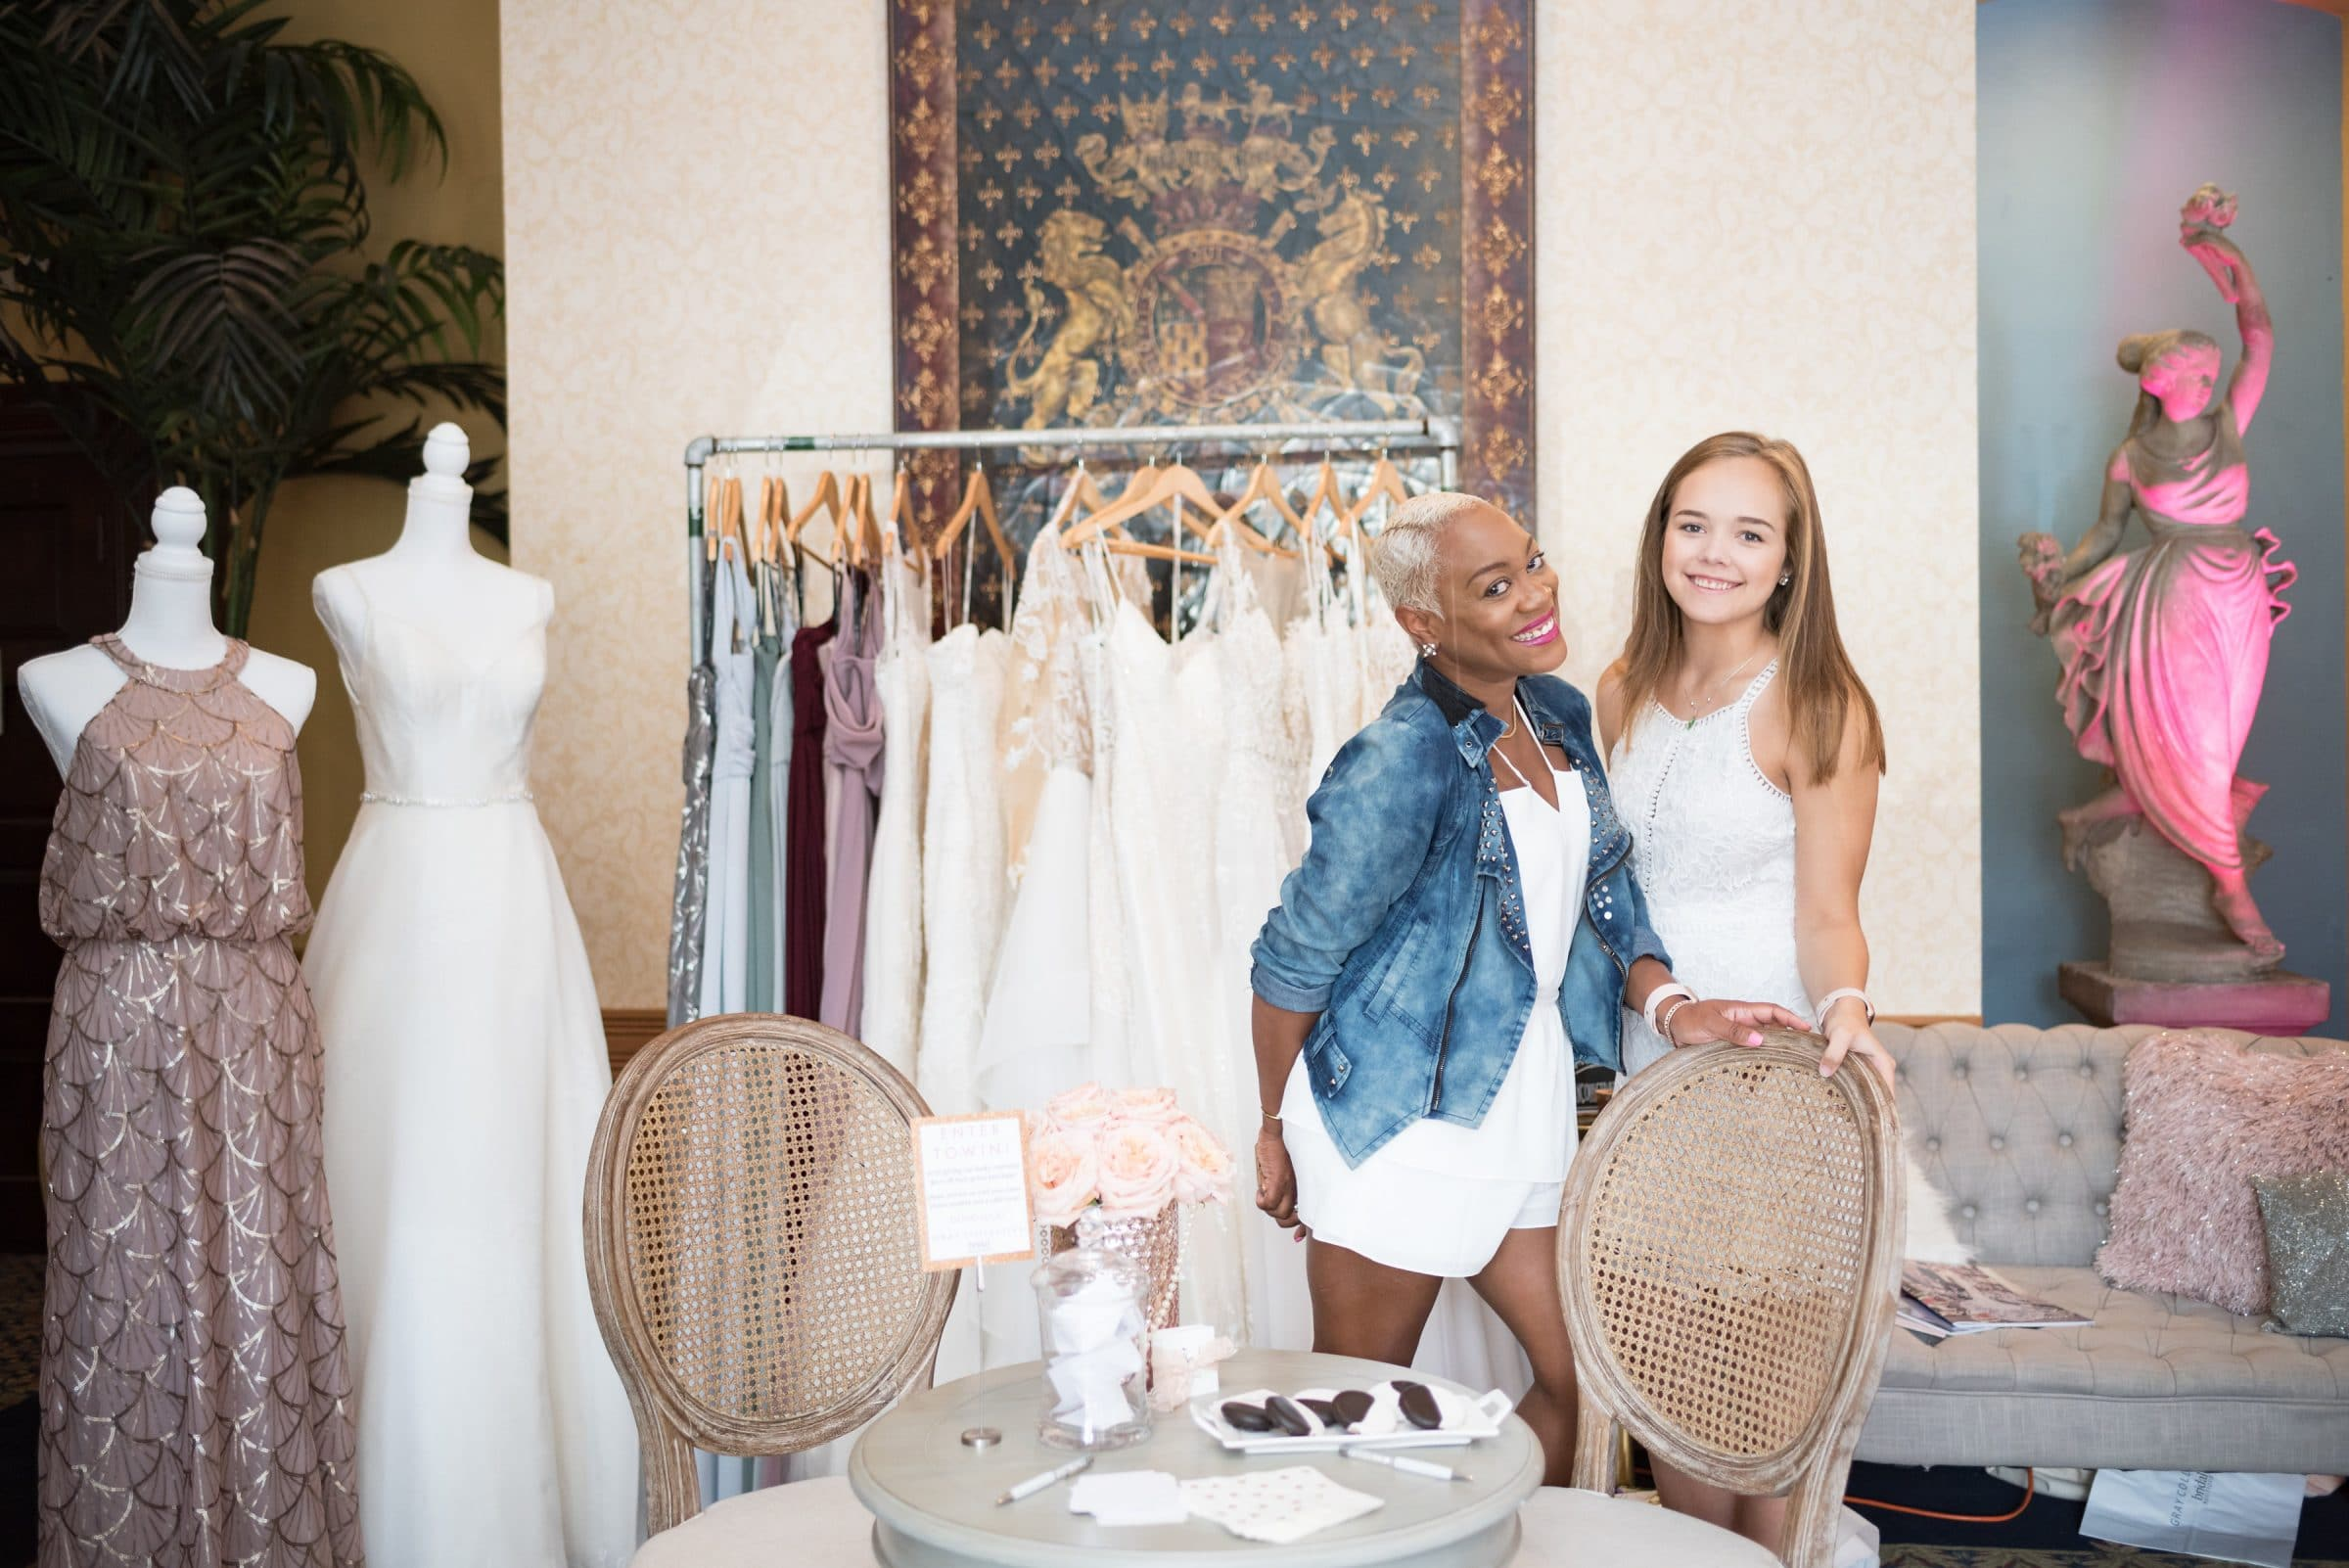 Wedding dresses with two women sales managers